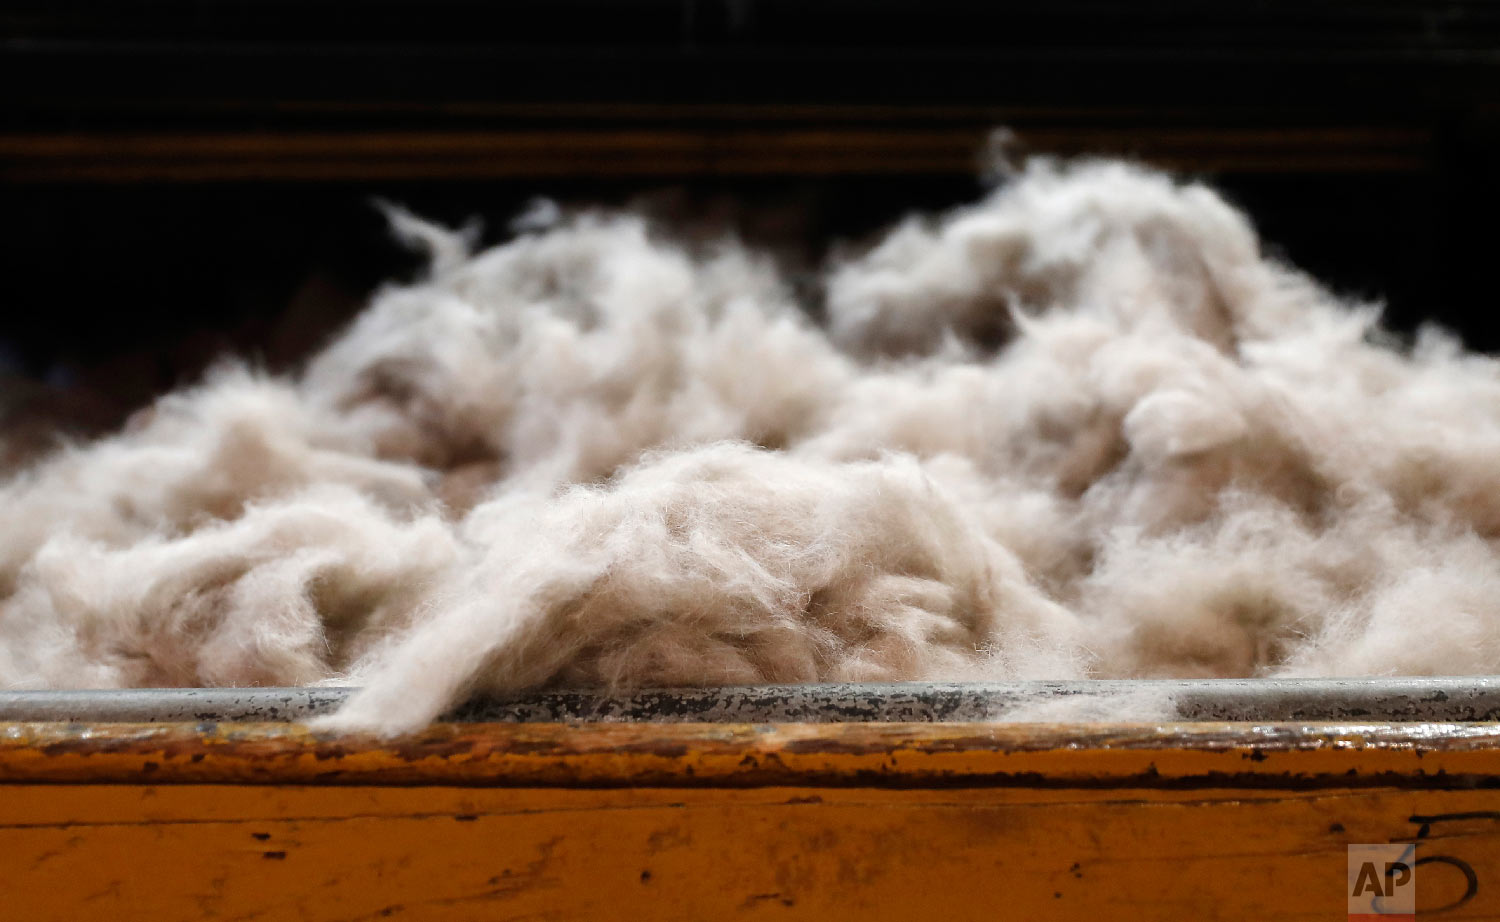 Rabbit fur to be moulded into a hat sits on a table at Borsalino's hat factory, in Spinetta Marengo, near Alessandria, Italy, Thursday, Jan. 17, 2019. (AP Photo/Antonio Calanni)